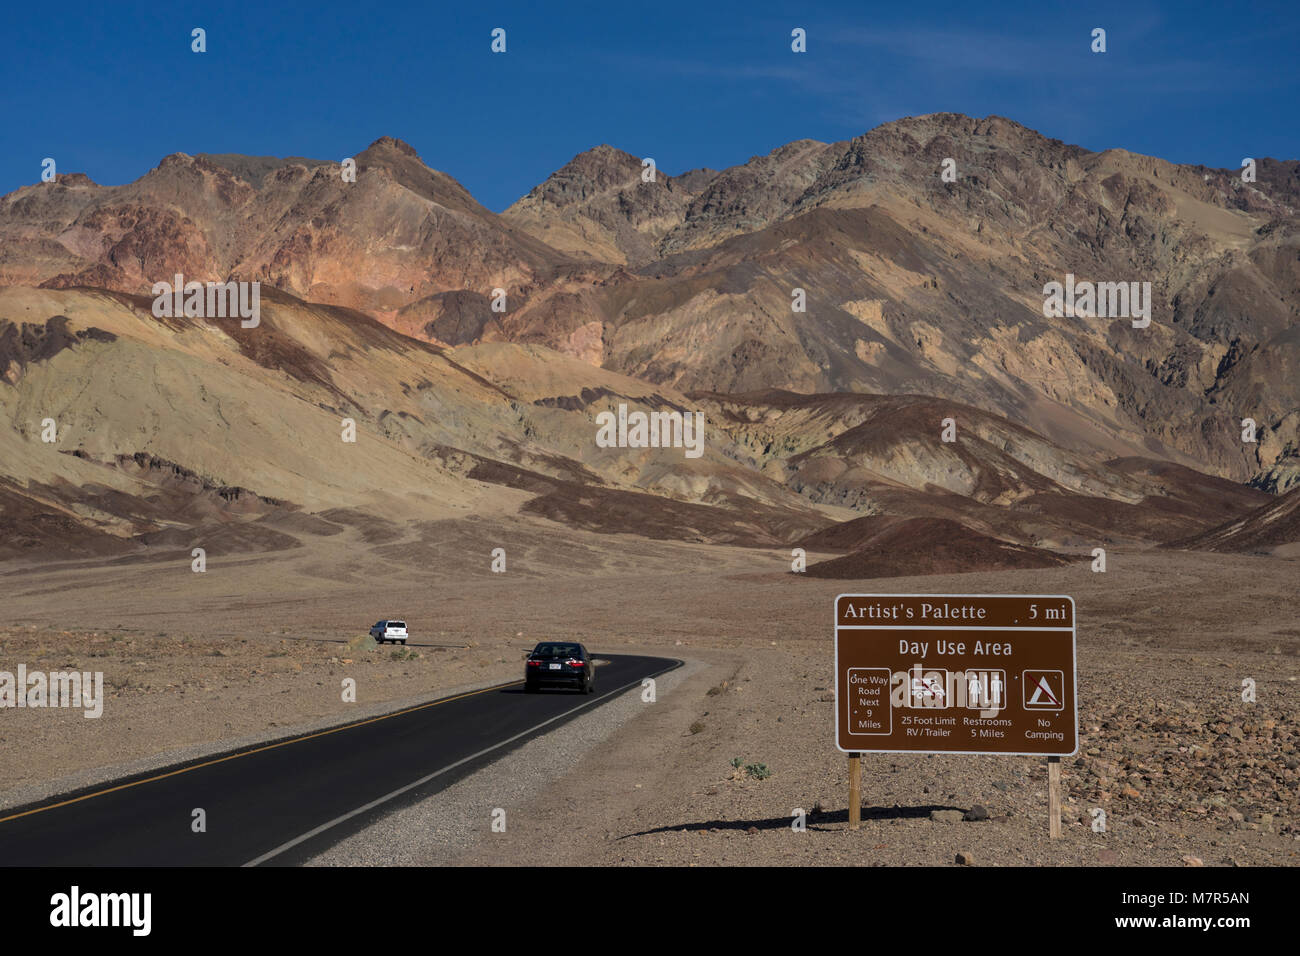 Palette d'artistes,de Death Valley National Park, California, United Staes Photo Stock